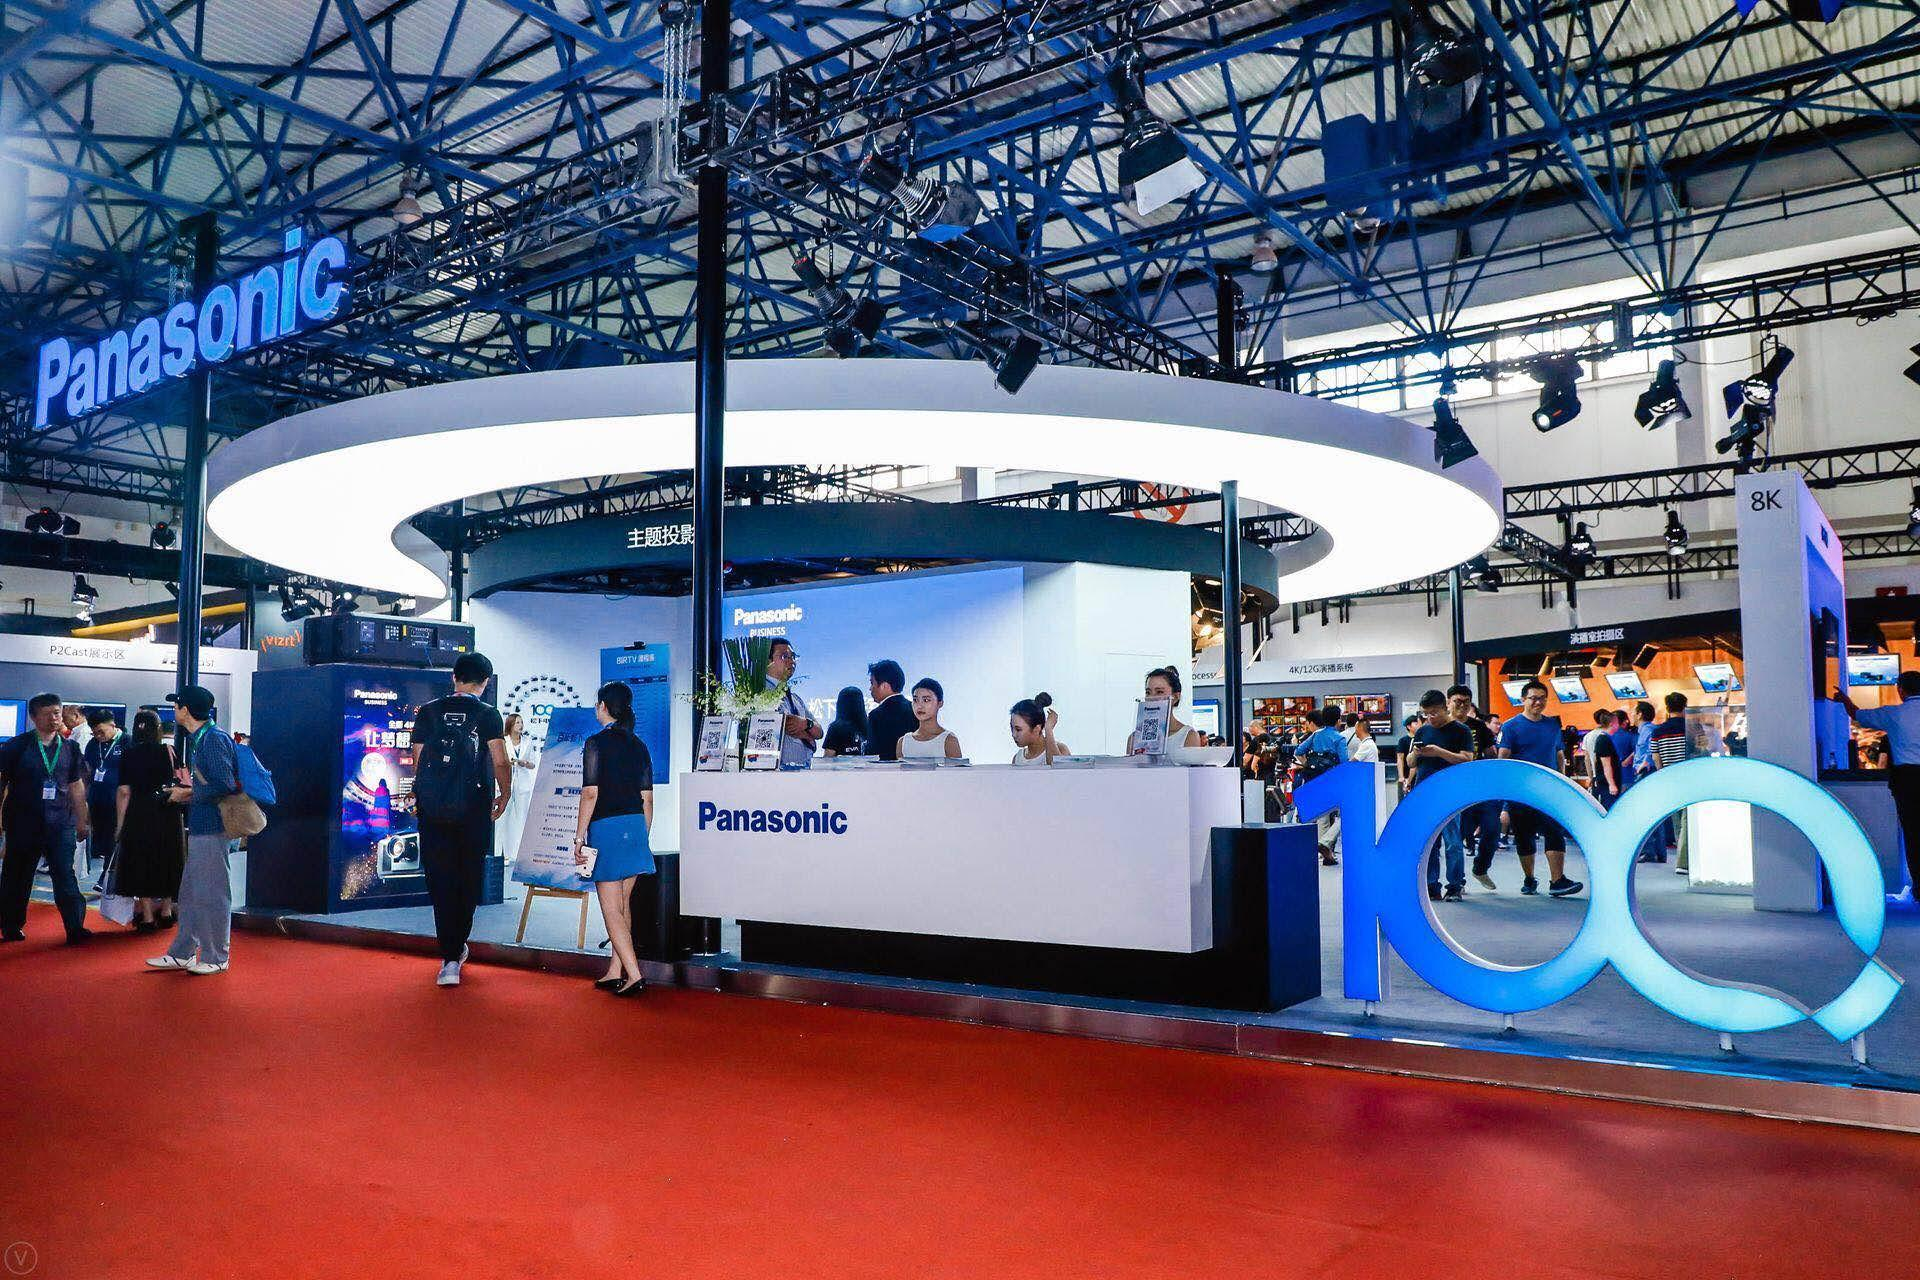 Photo: Panasonic booth at BIRTV 2018